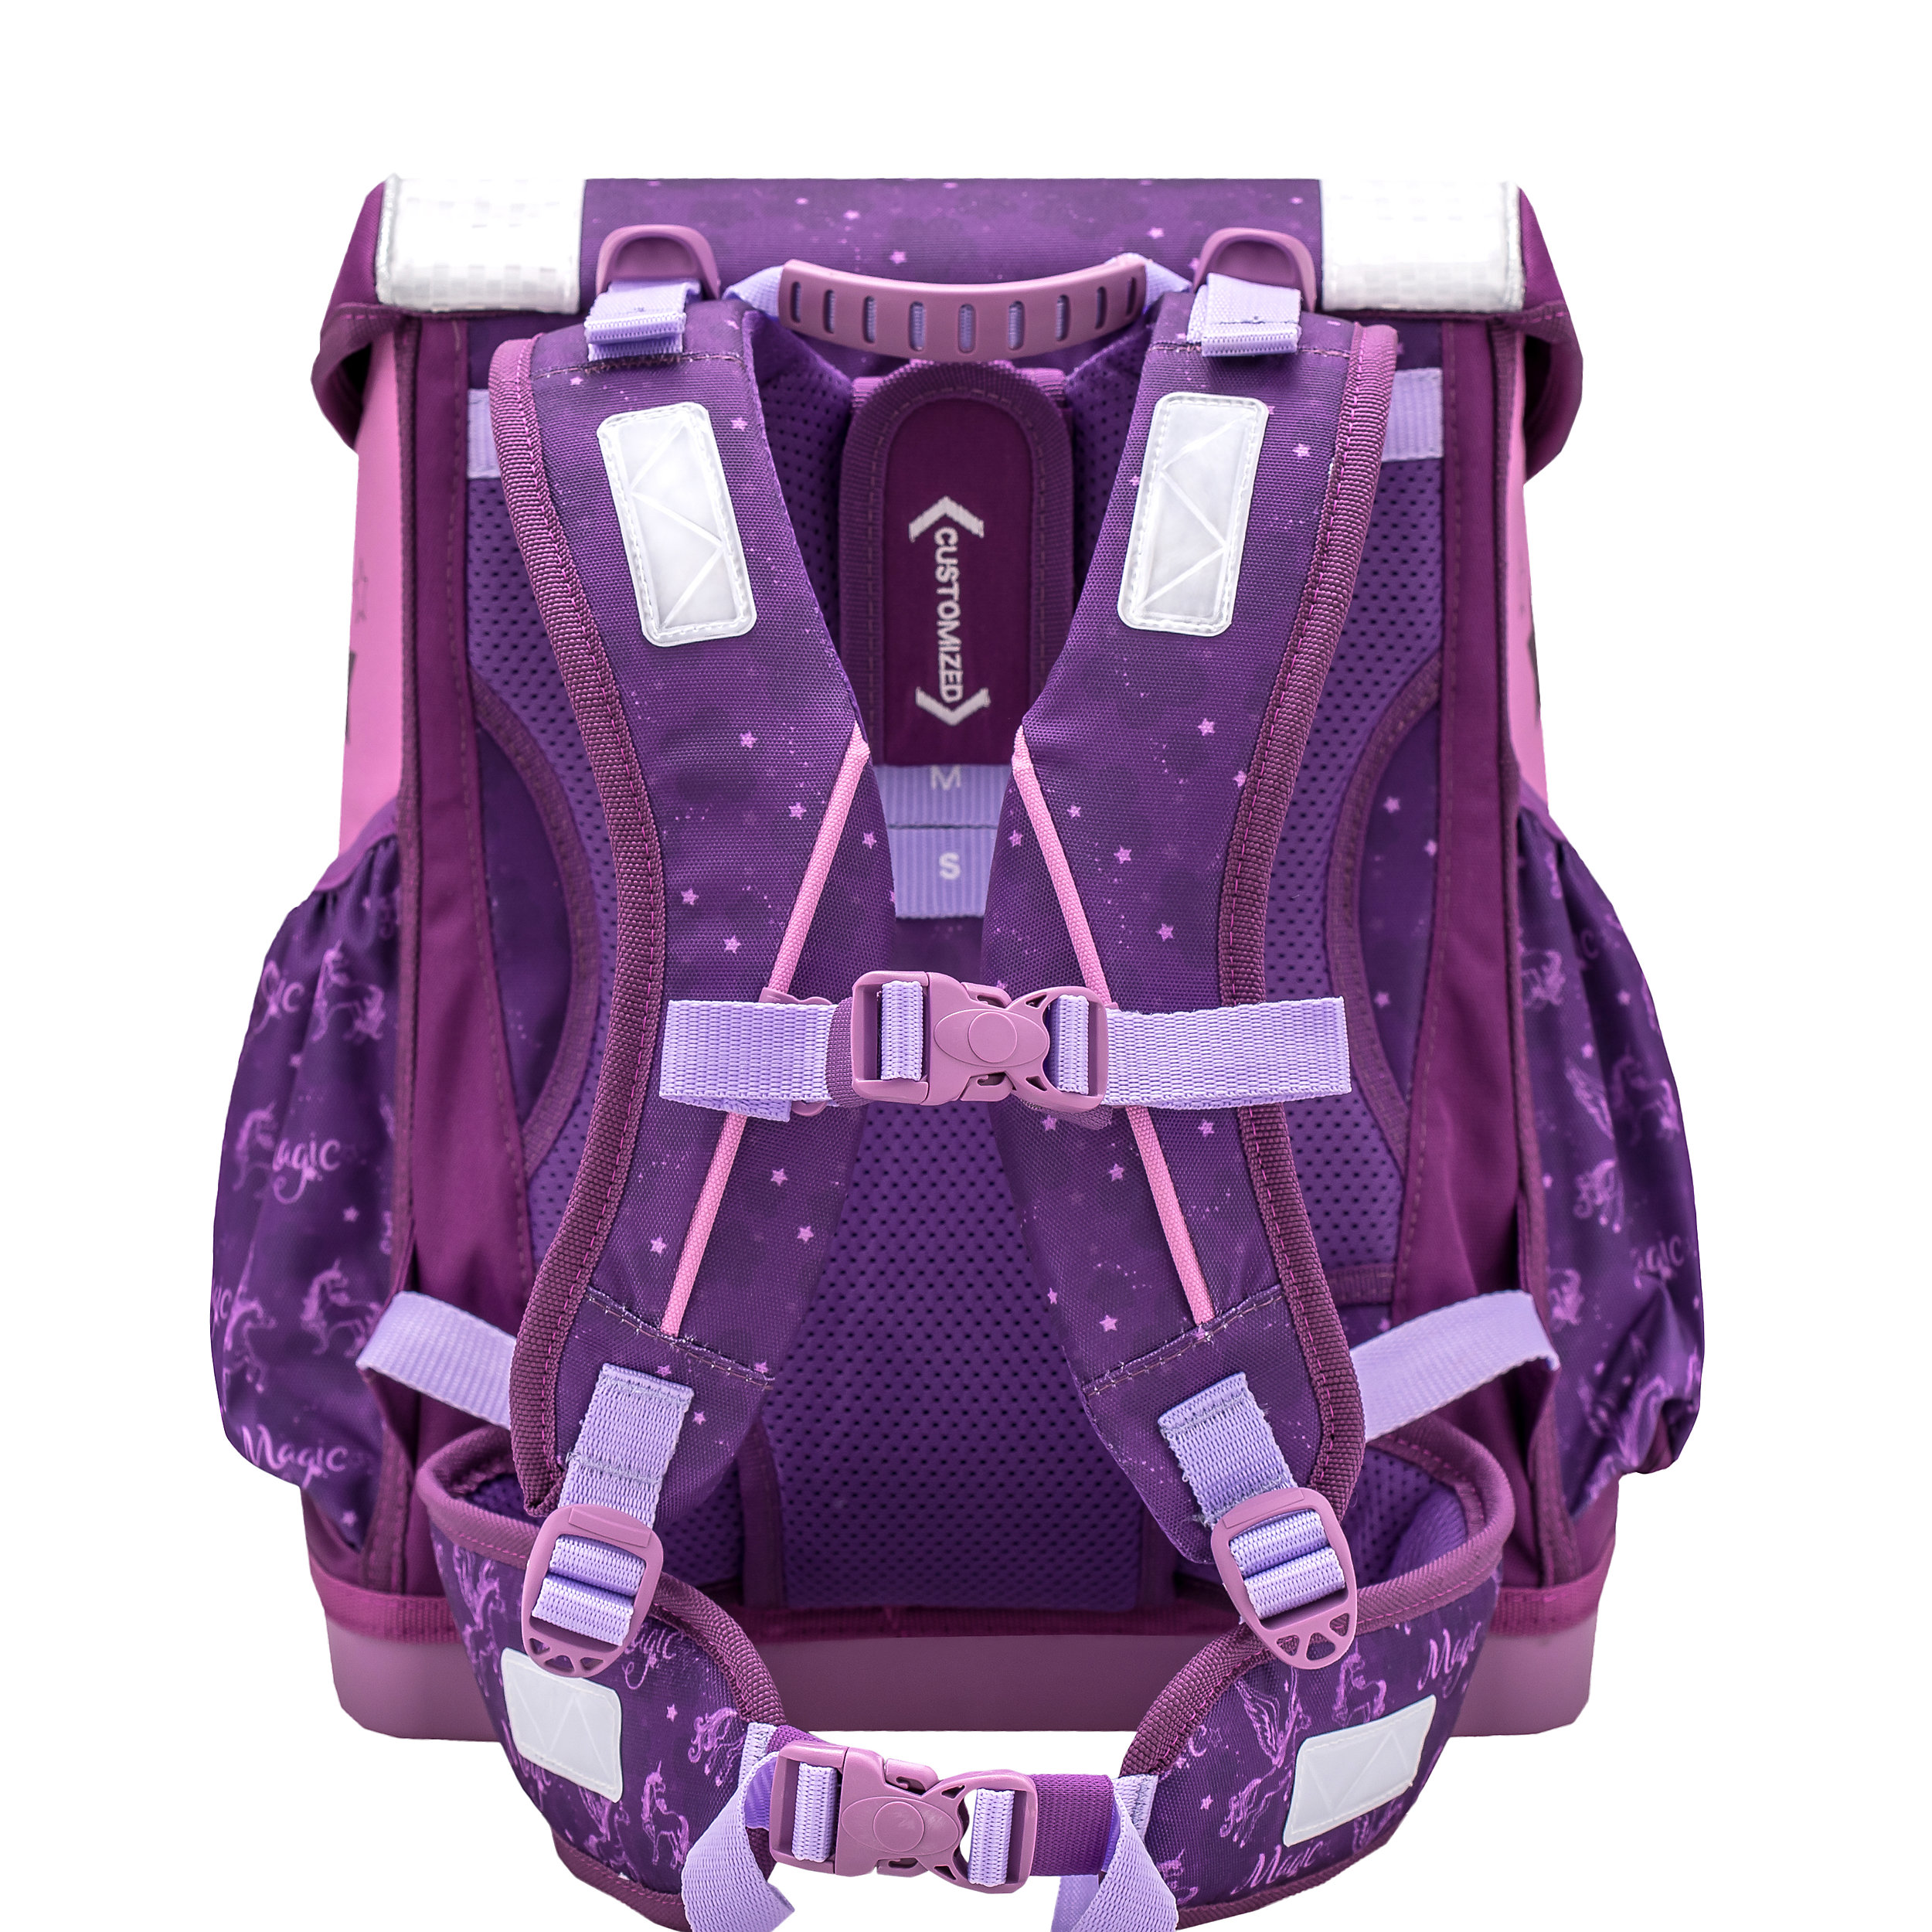 4-part Satchel Set Customize-Me 19 Liter